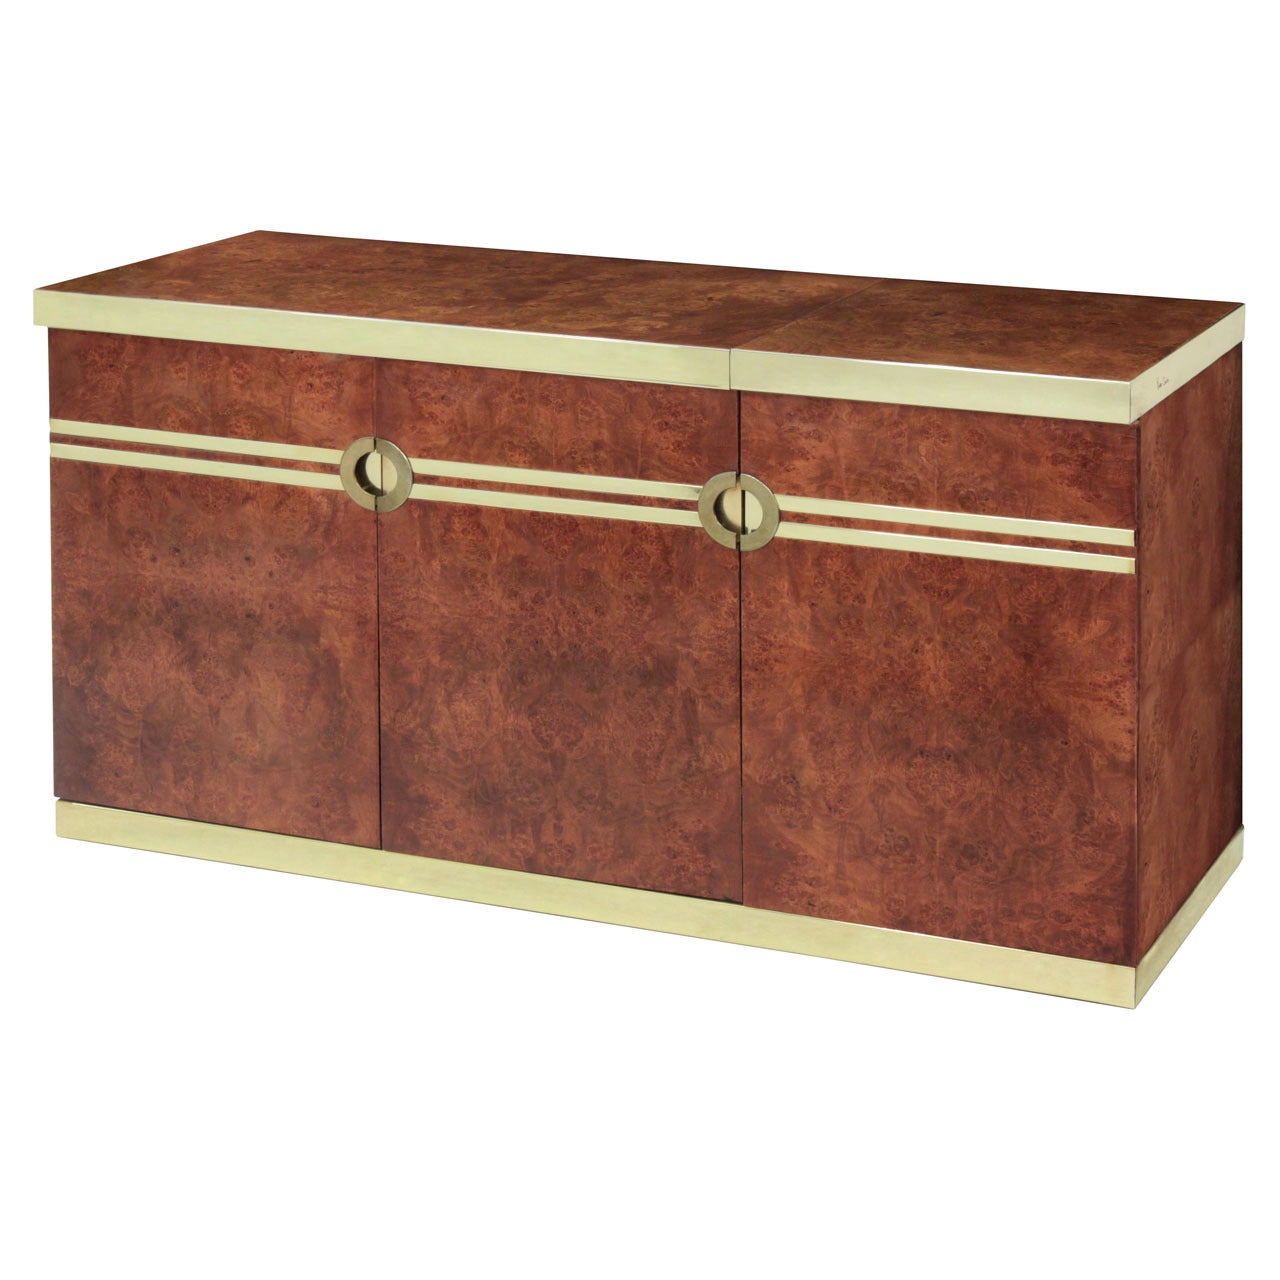 Lift-Top Bar with Brass Accents by Pierre Cardin